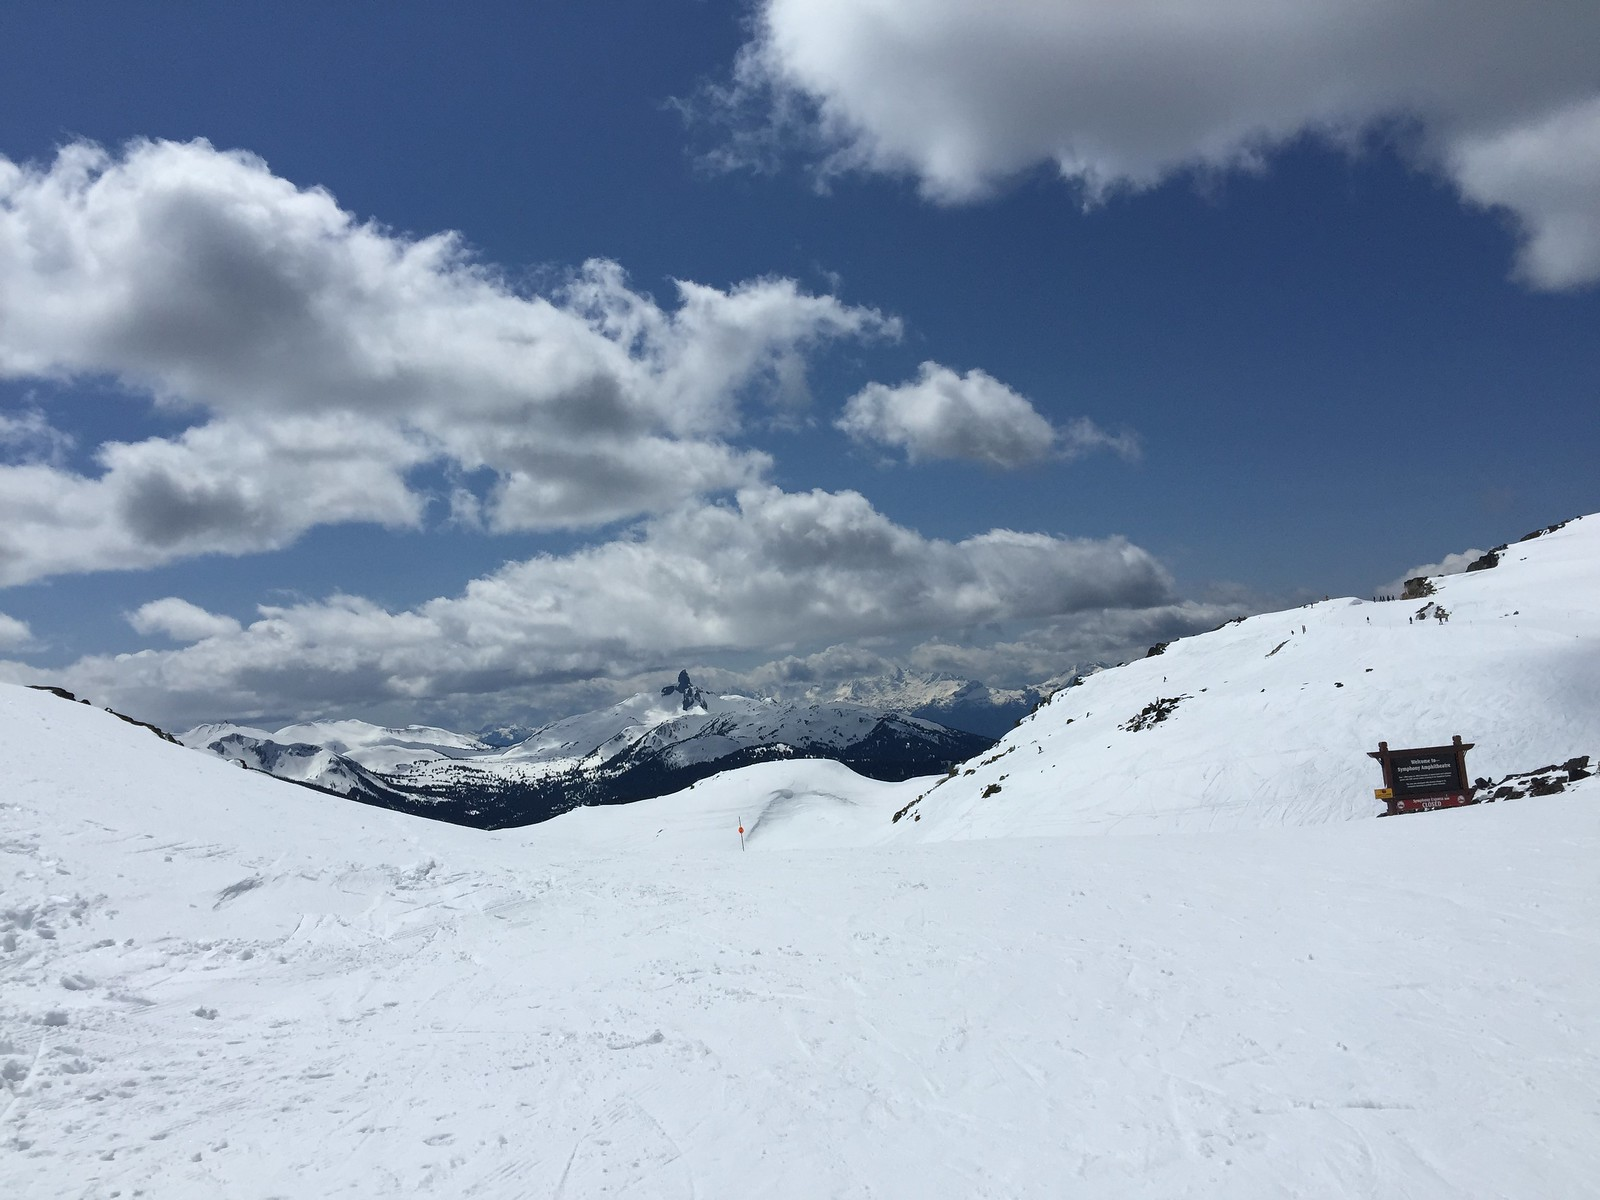 Great spring snow at Harmony at Whistler